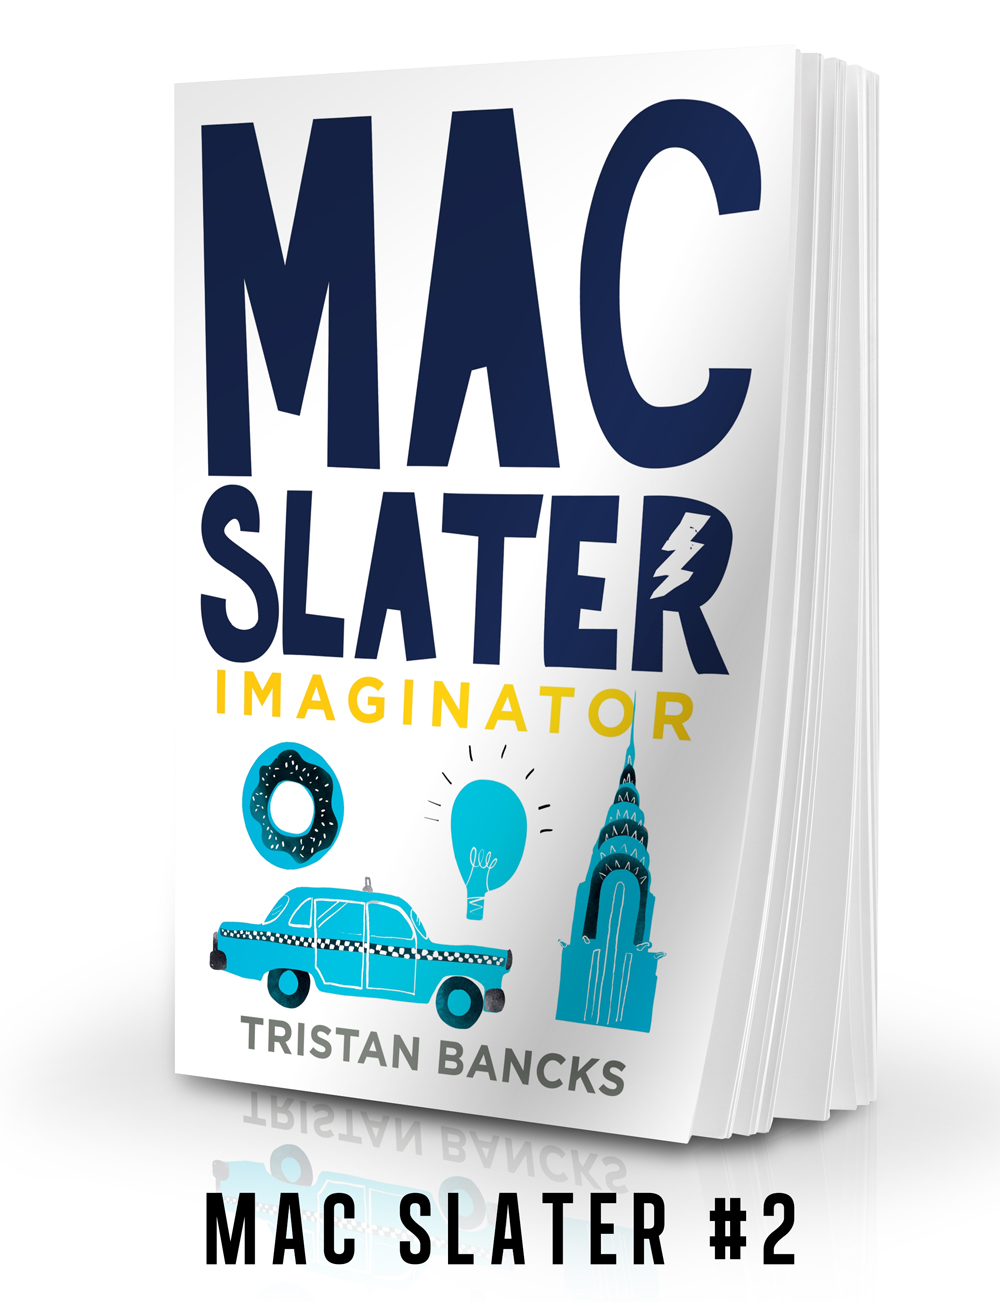 MAC SLATER IMAGINATOR an action adventure book by author TRISTAN BANCKS